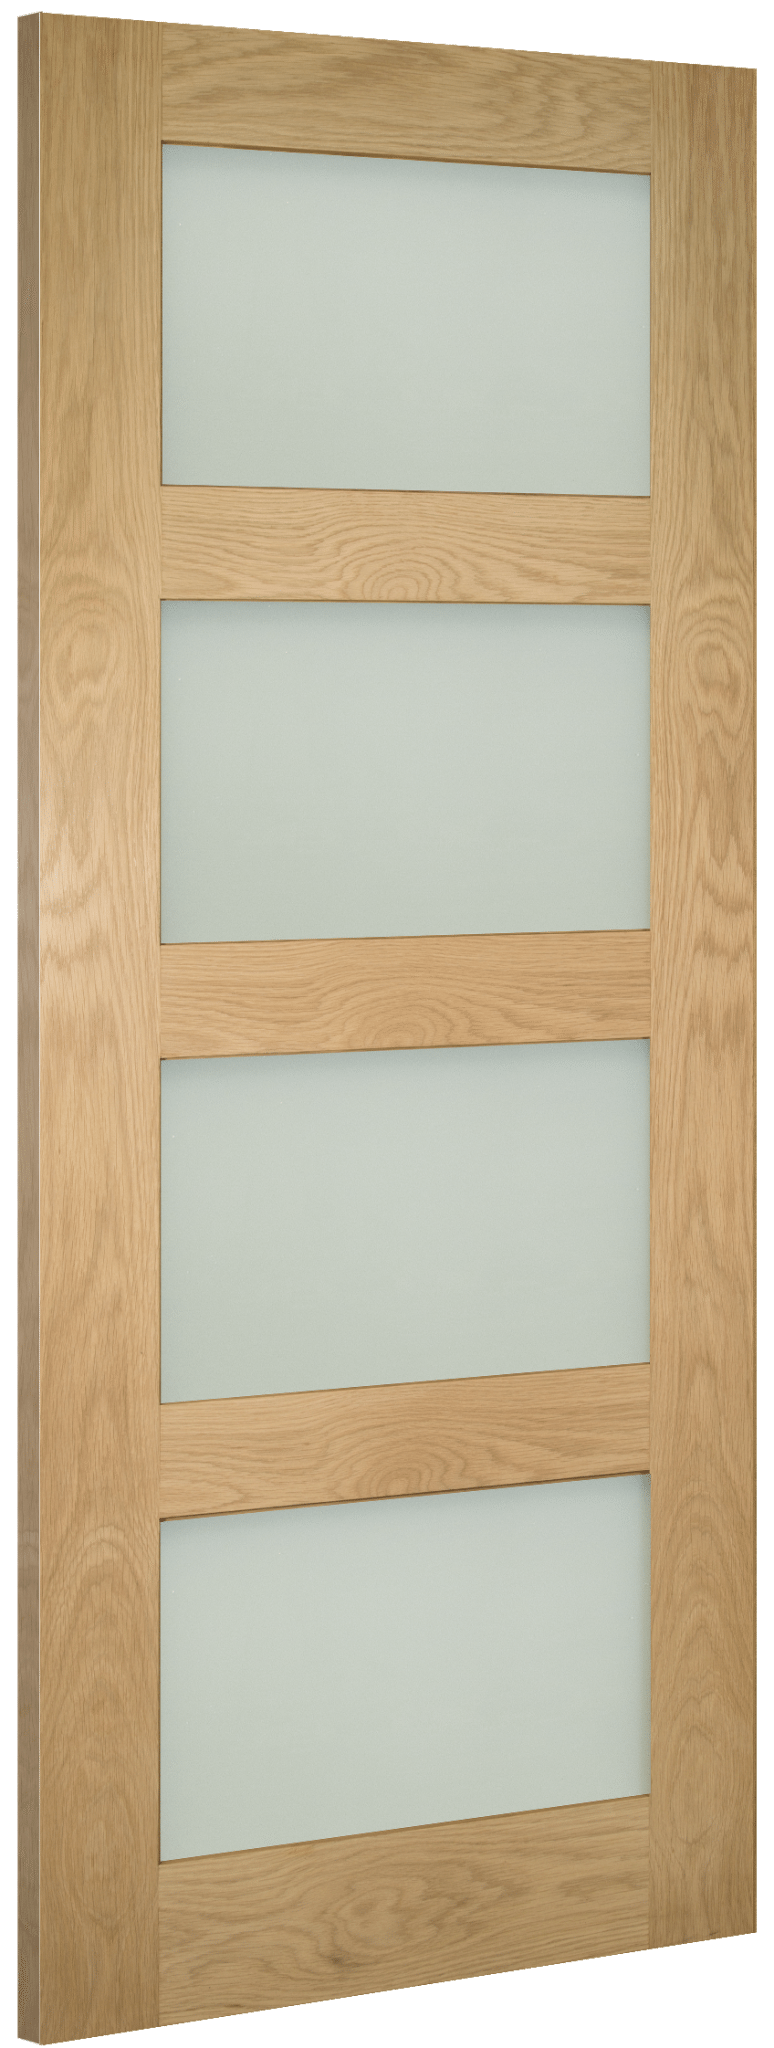 Coventry Glazed Oak Shaker - Frosted Glass Fully Finished